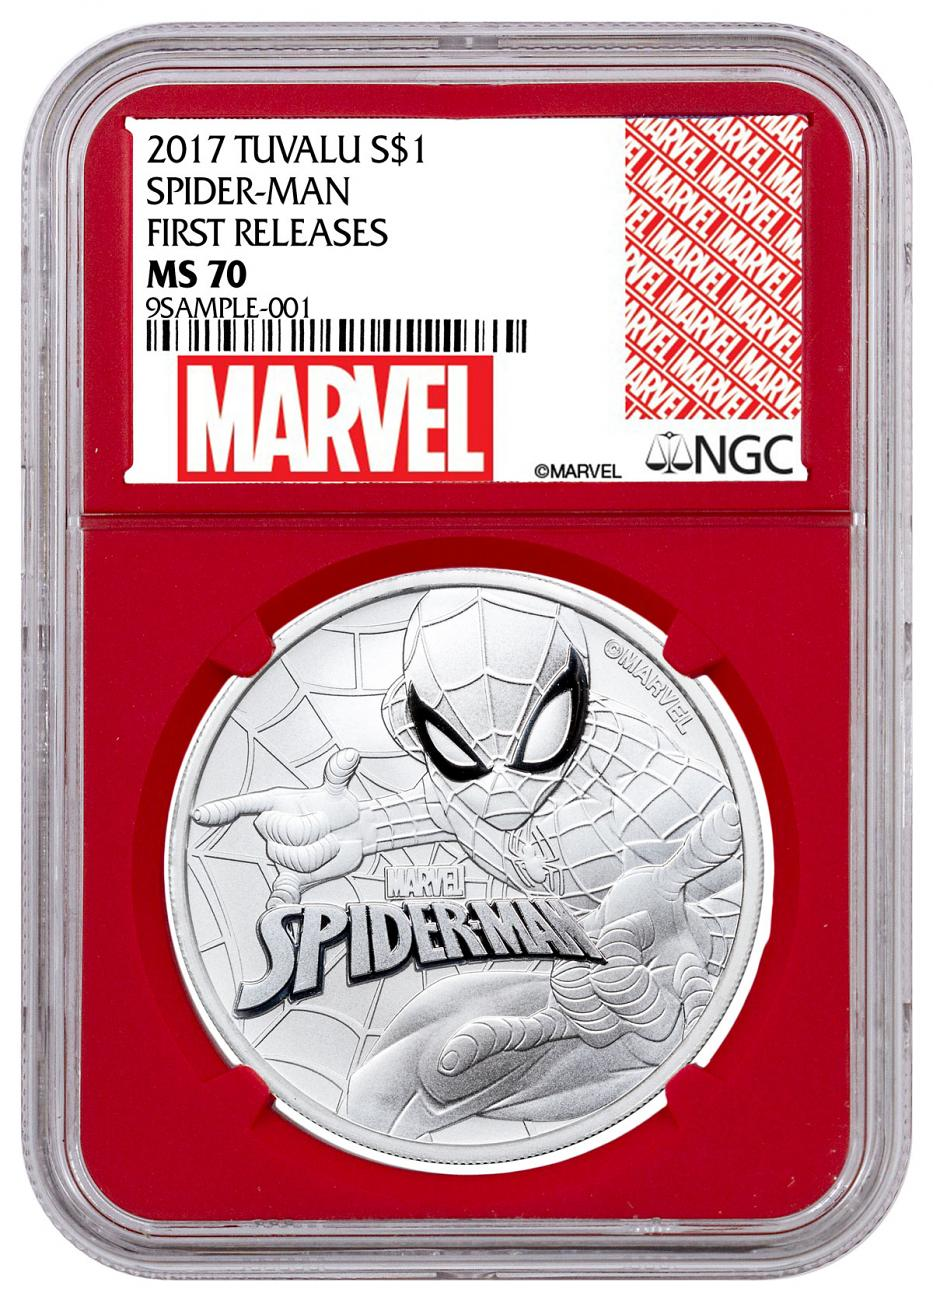 2017 Tuvalu Spider-Man 1 oz Silver Marvel Series $1 Coin NGC MS70 FR Red Core Holder Exclusive Marvel Label